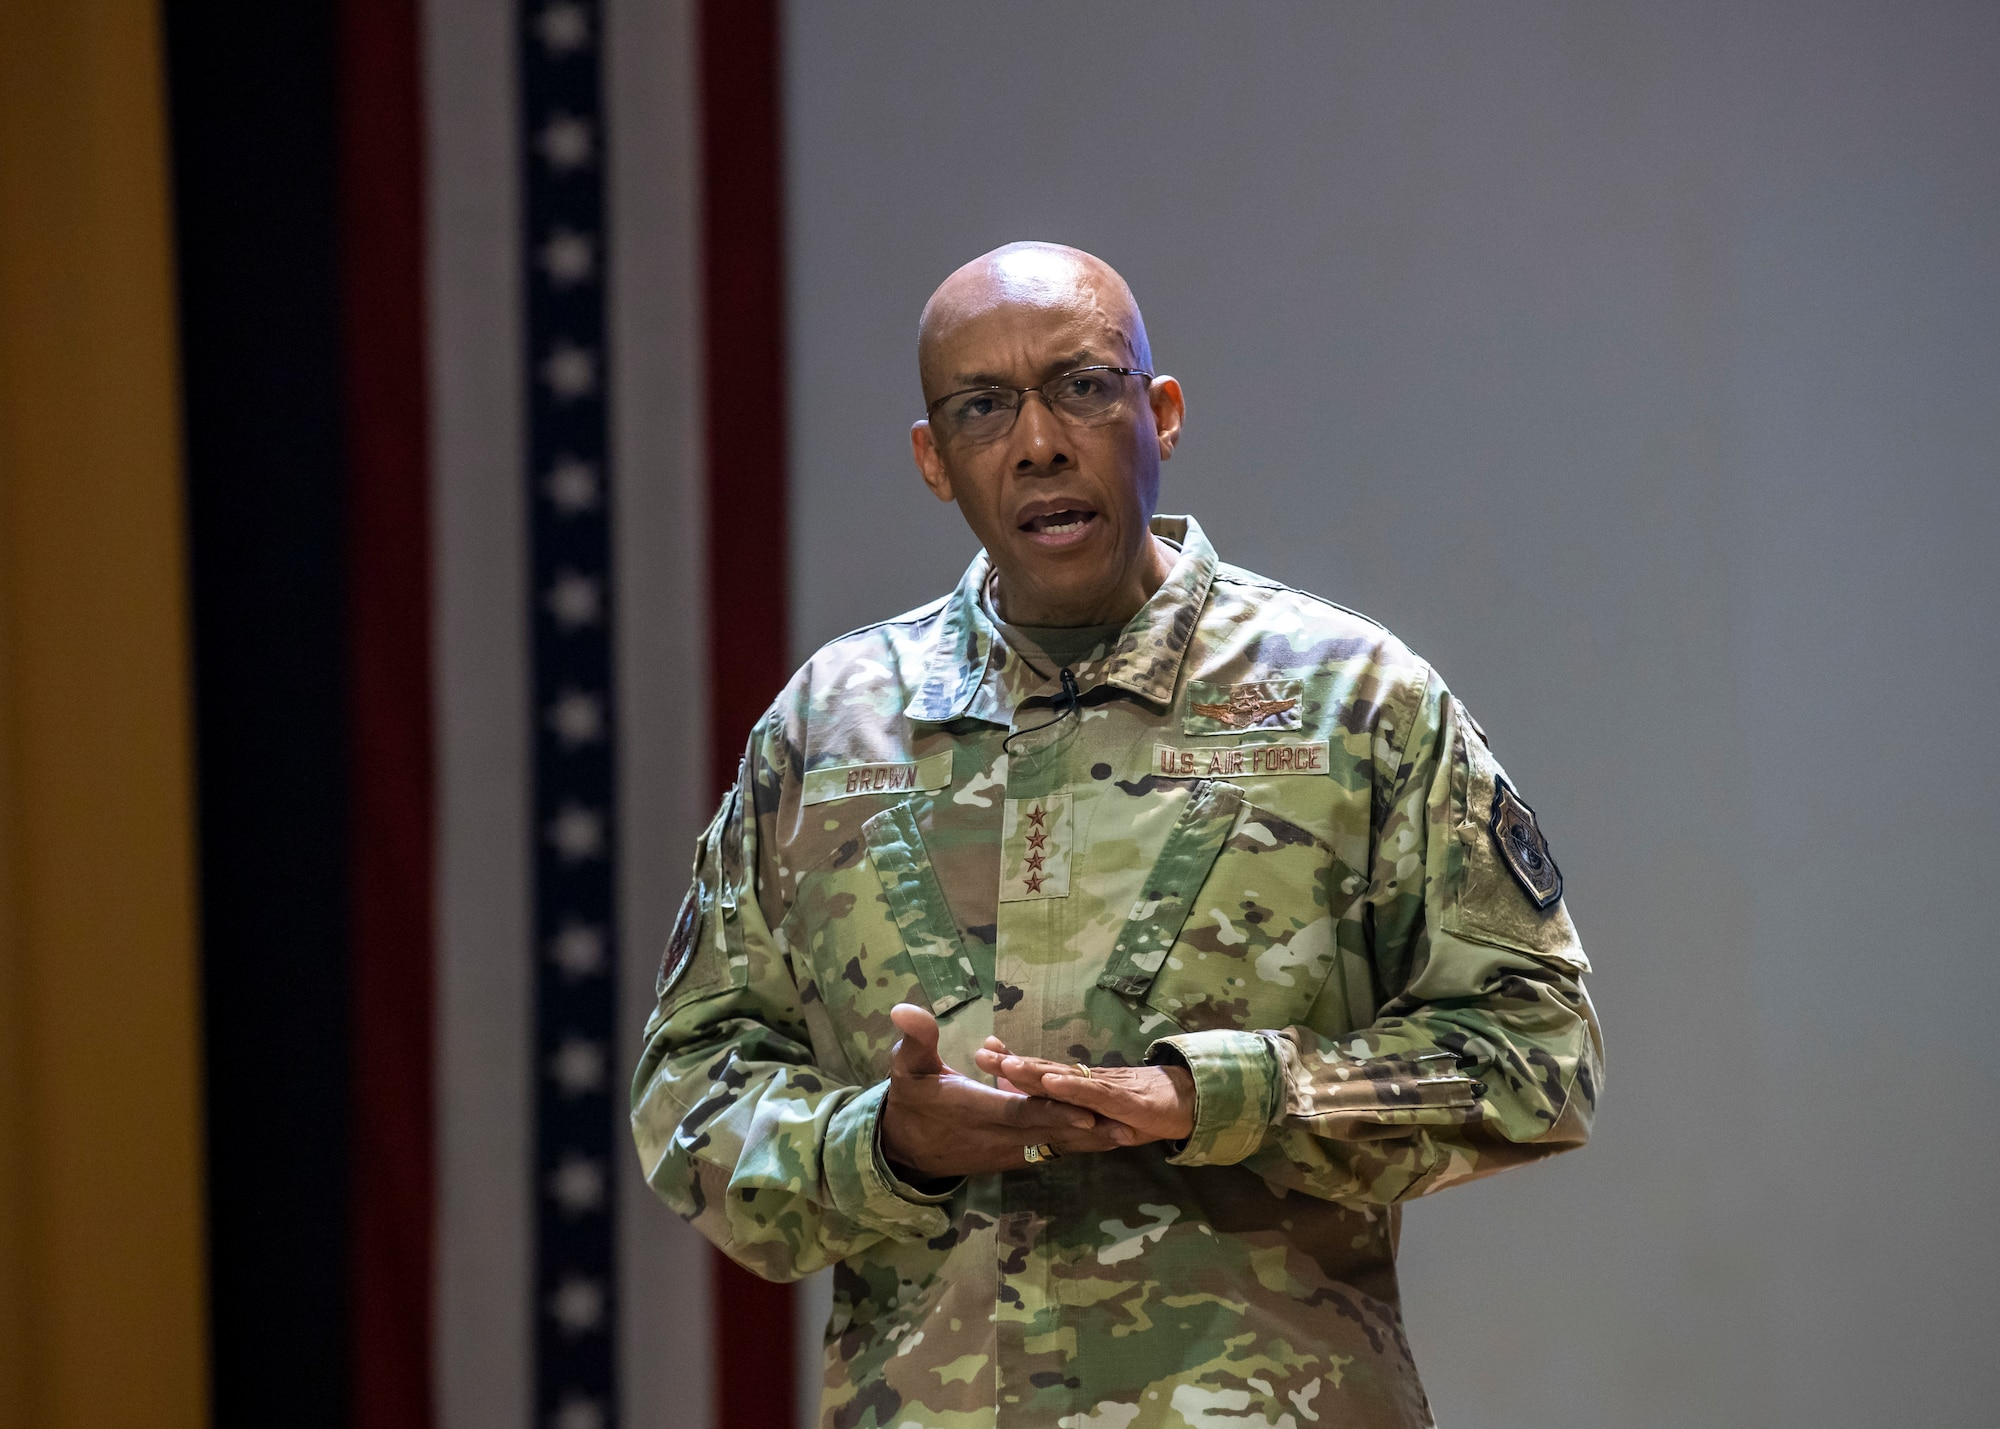 Chief of Staff of the Air Force, Gen. Charles Q. Brown Jr. addresses Team MacDill during an all call at MacDill Air Force Base, Florida, June 11, 2021.